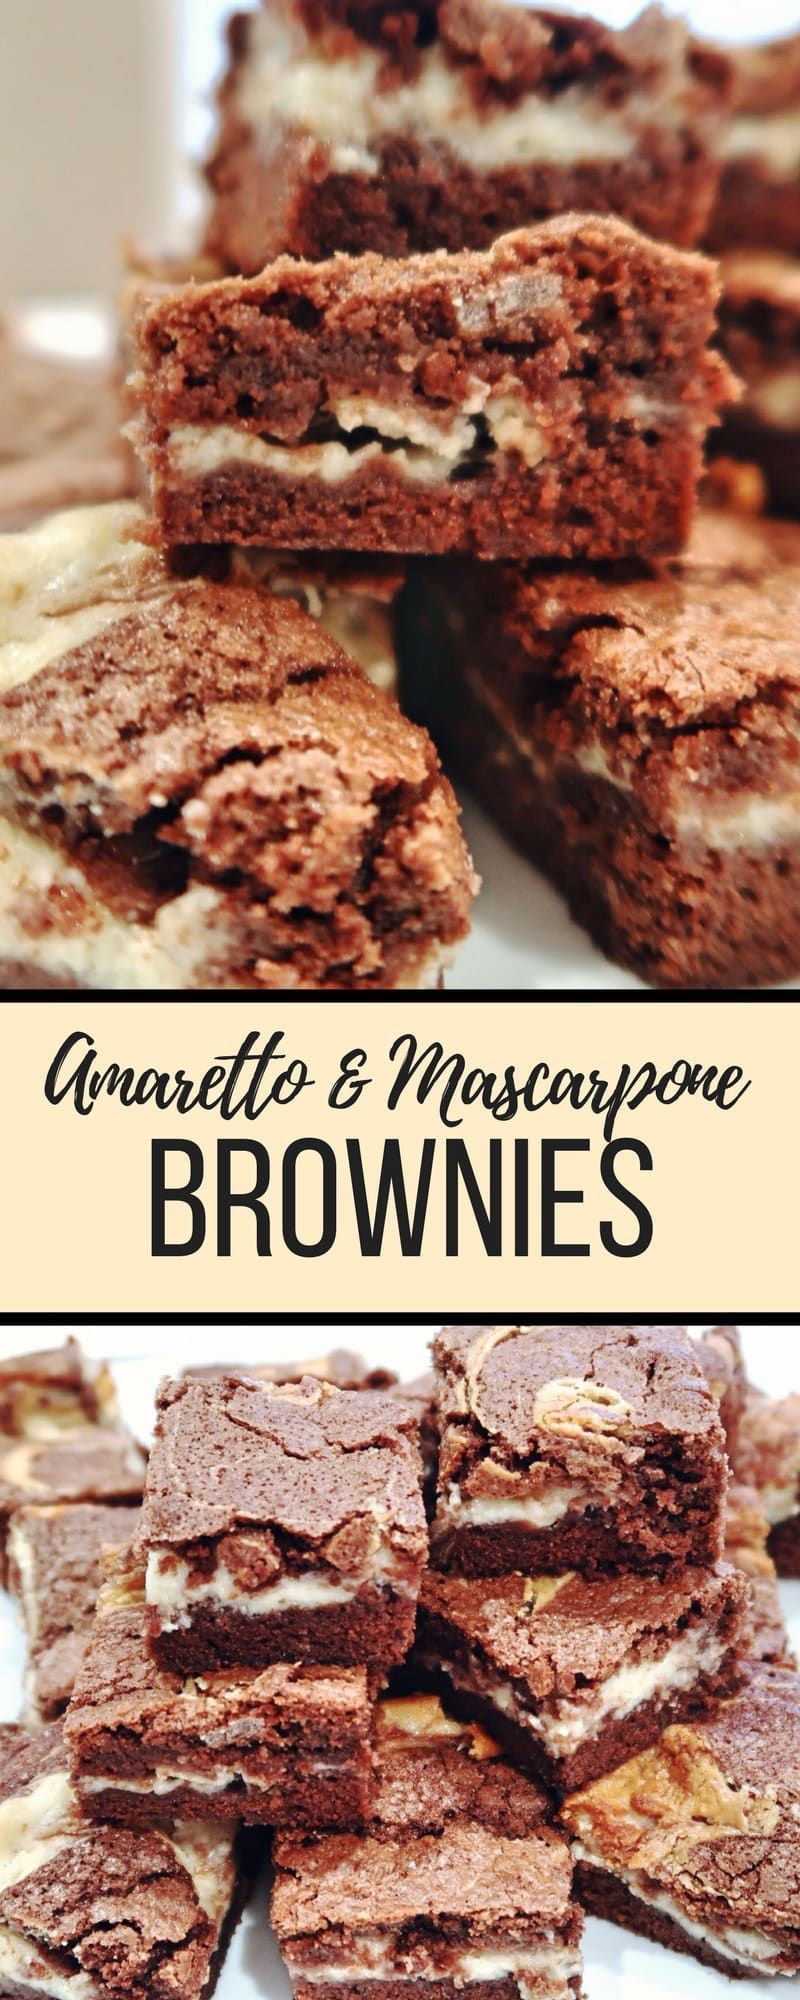 Amaretto and Mascarpone Brownies - the ultimate indulgant brownie treats made with amaretto liquer and mascarpone cheese filling. #brownies #amaretto